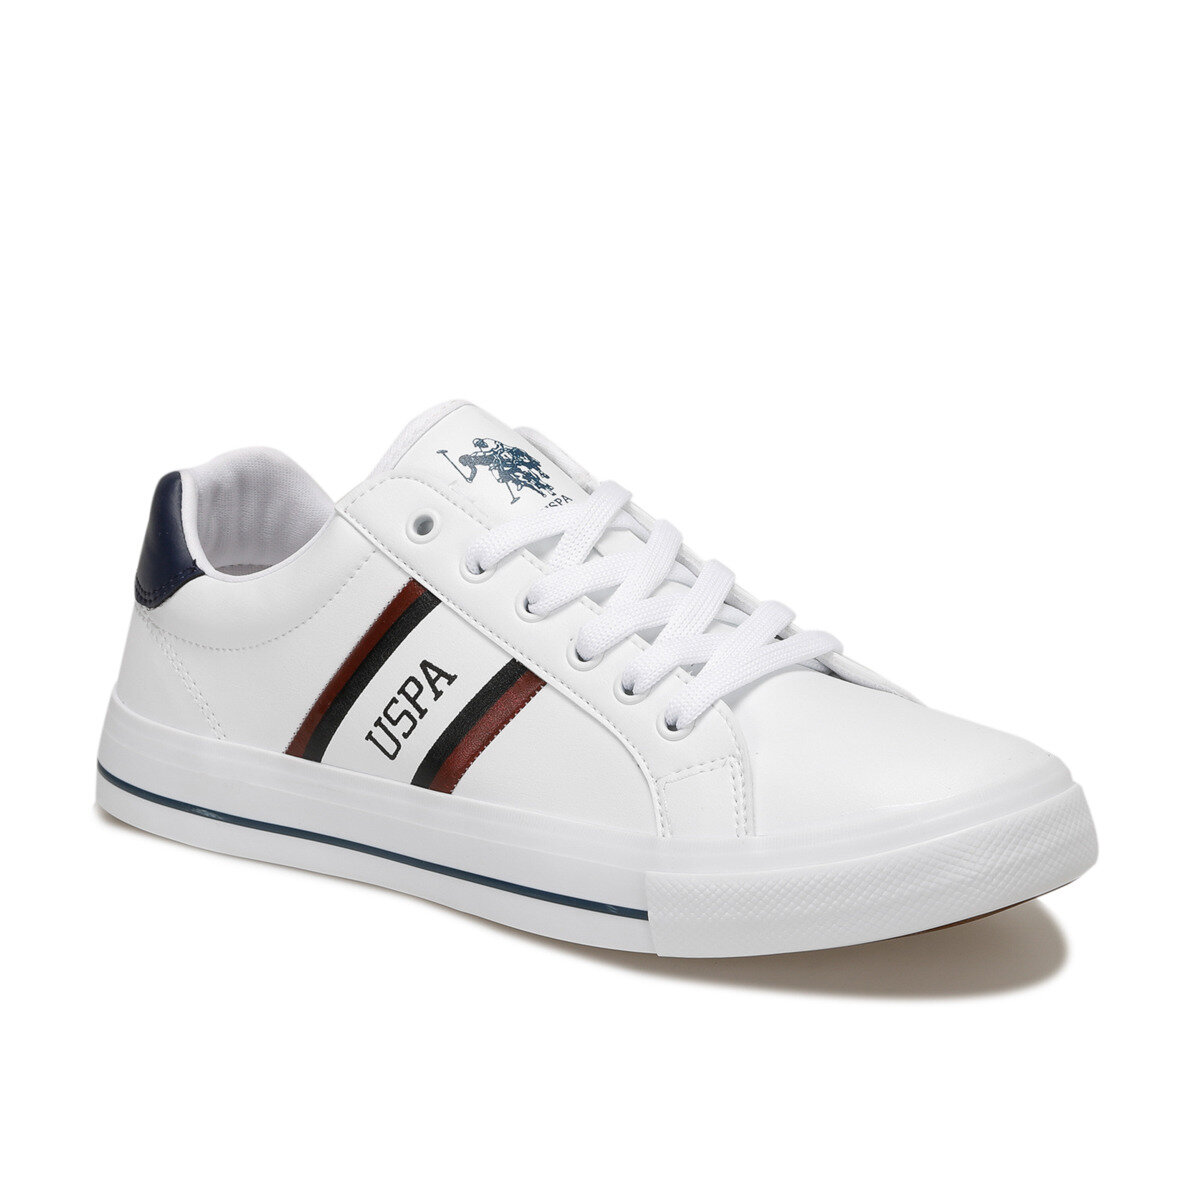 FLO White Men's Sneaker 2020 Men Casual Shoes Fashion New Sneakers Men Shoes Comfort Sneakers Men's Shoes Trainers U.S. POLO ASSN. PURE